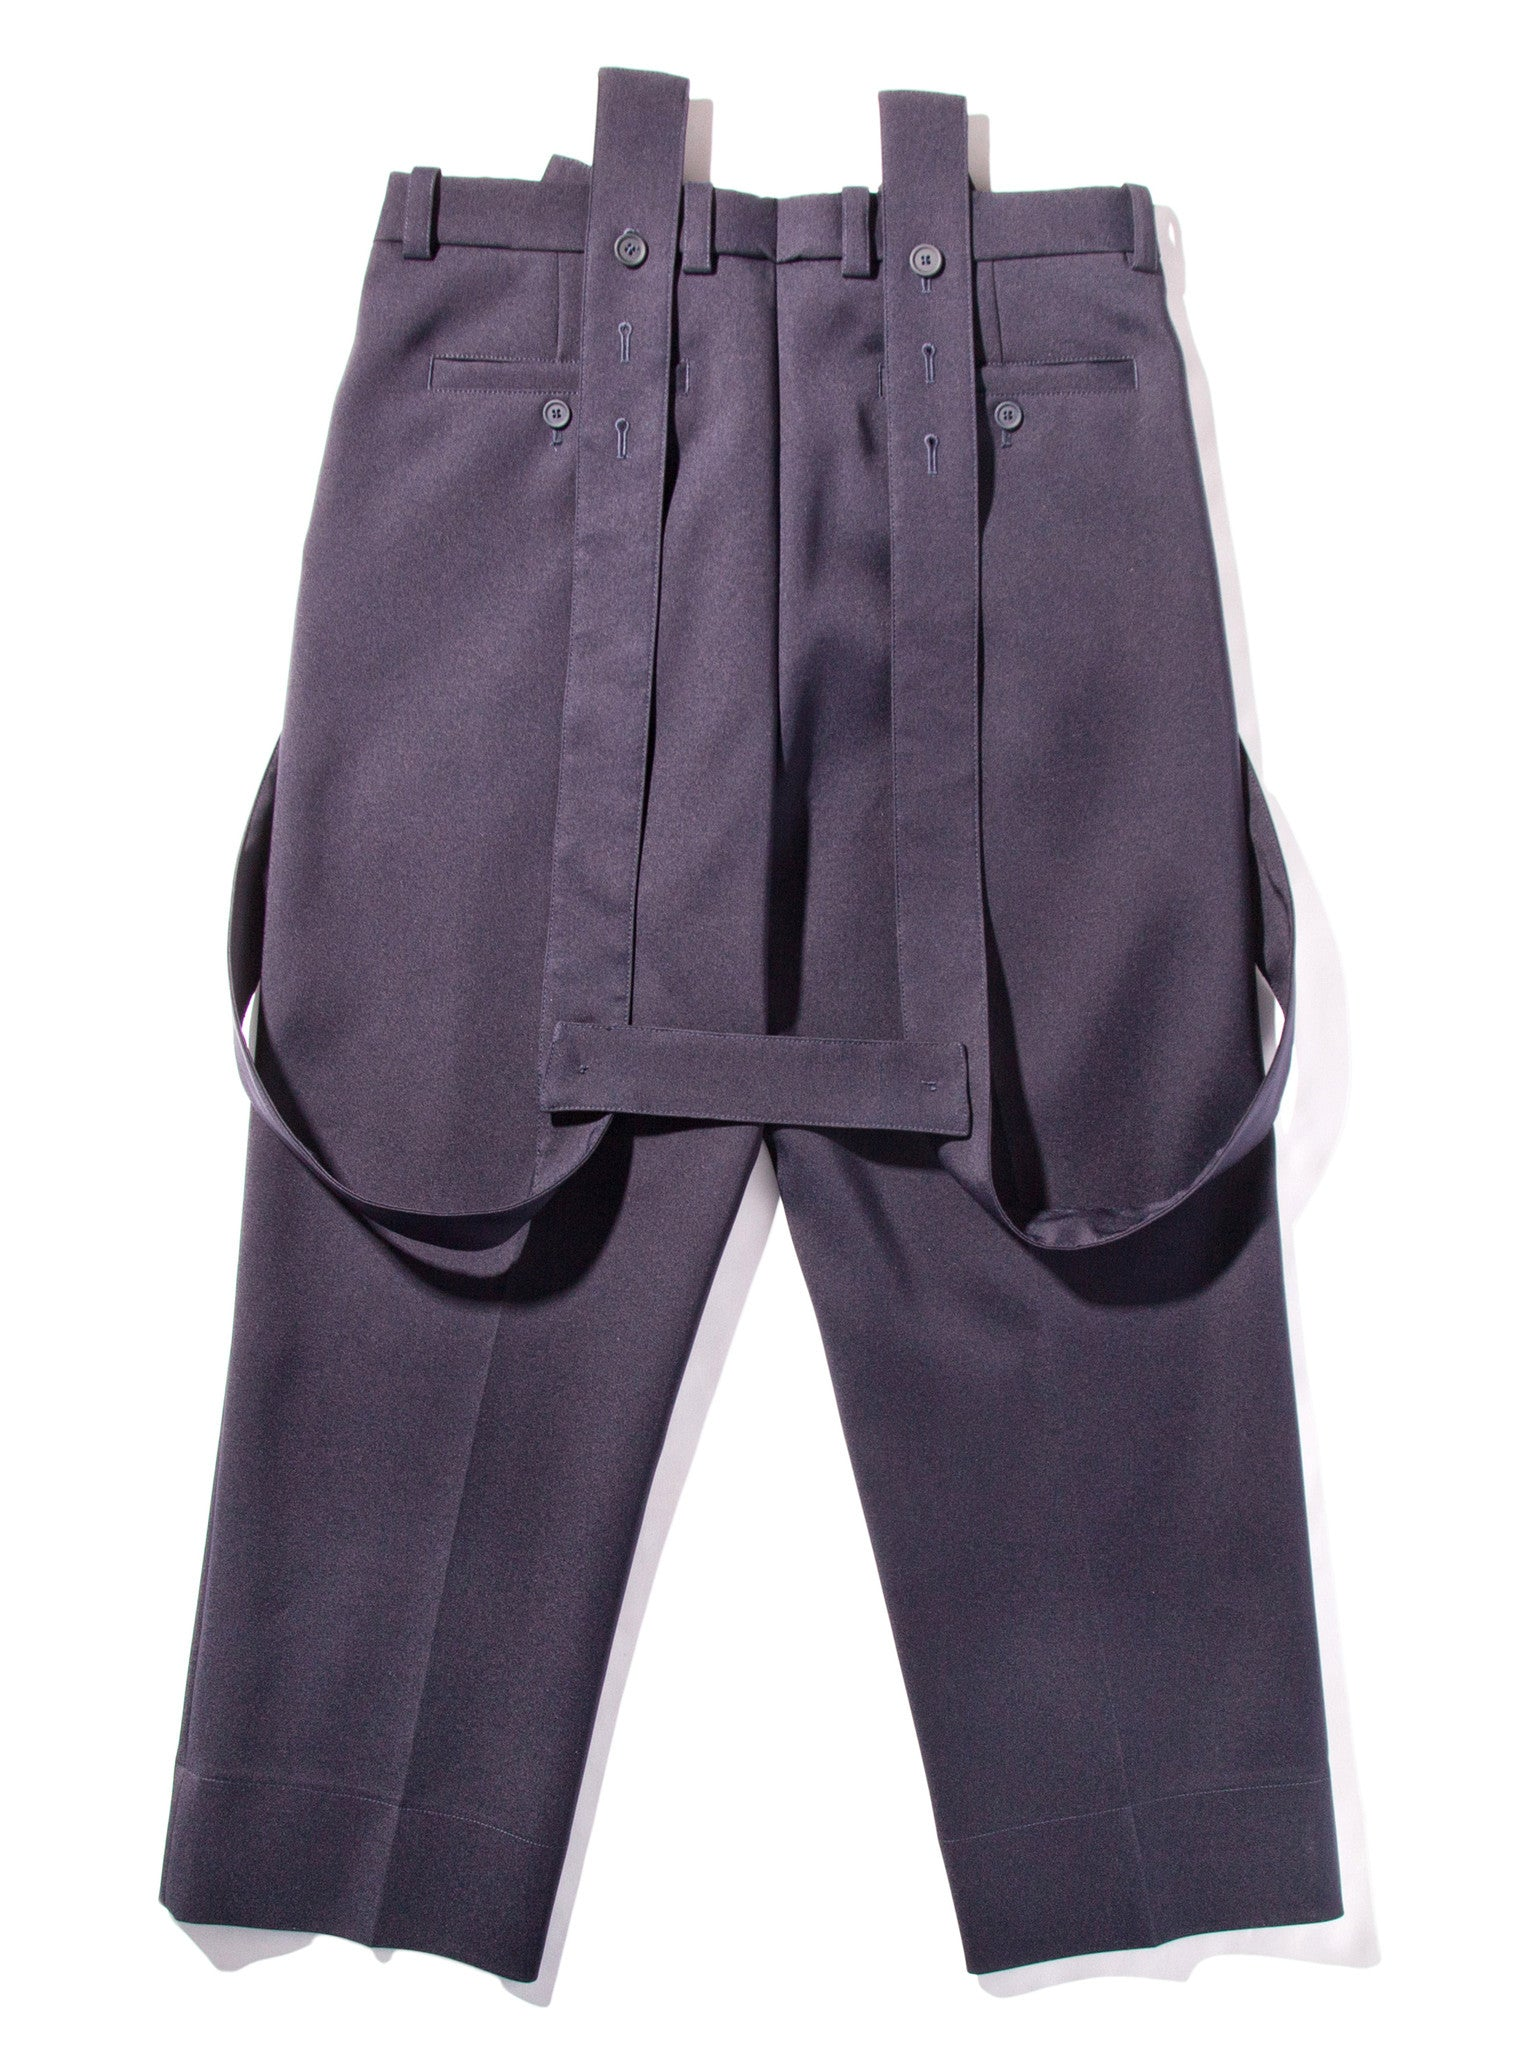 50 Technical Double Twill Trouser 7